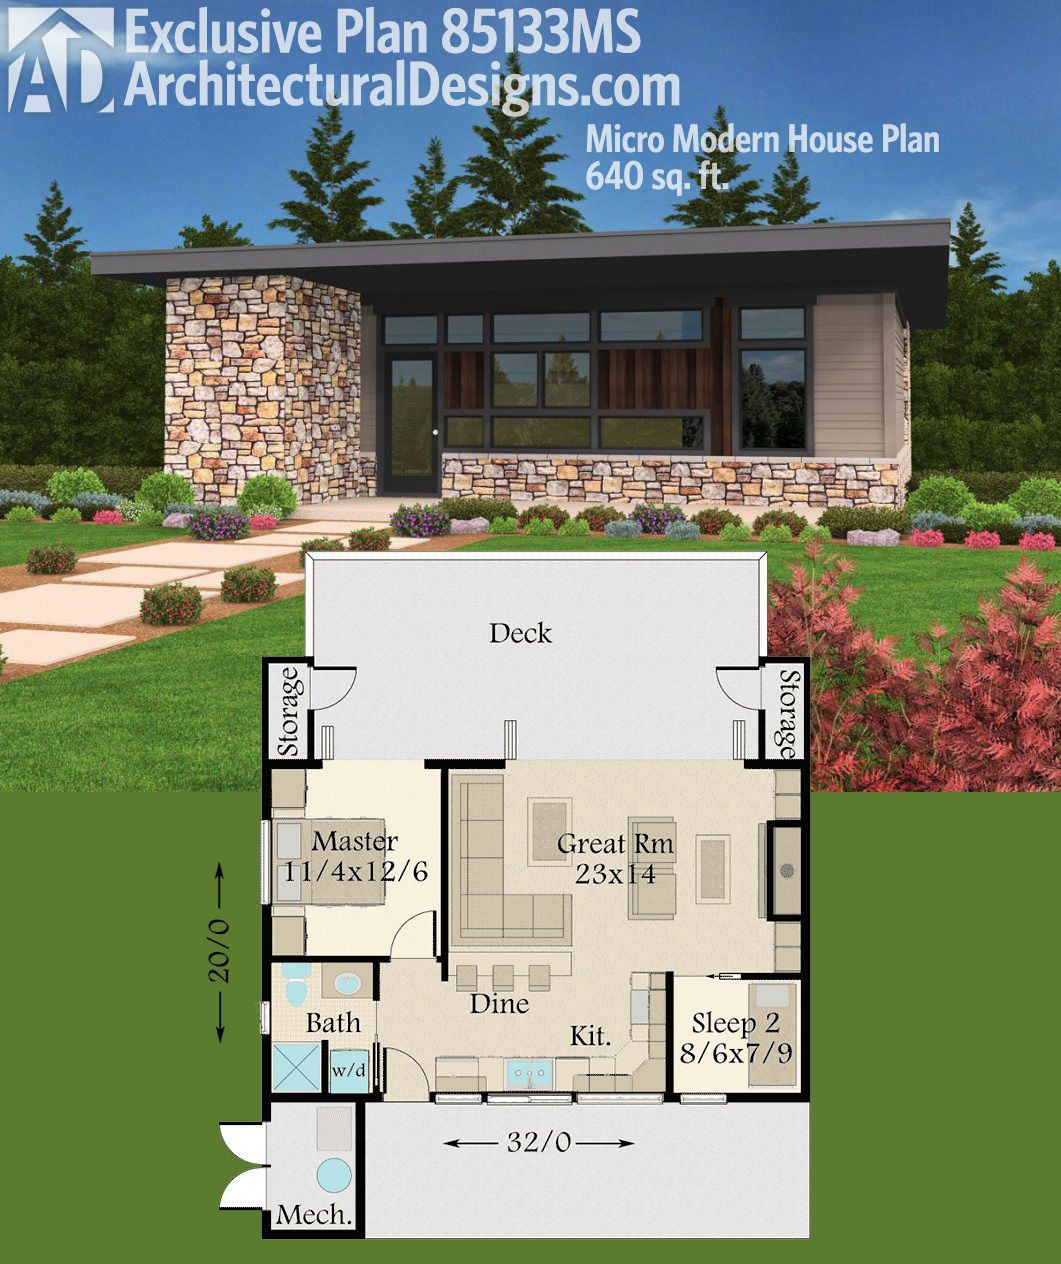 Plan 85133ms Exclusive Tiny Modern House Plan With Outdoor Spaces Front And Back Modern House Plan Tiny Modern House Plans Modern House Plans